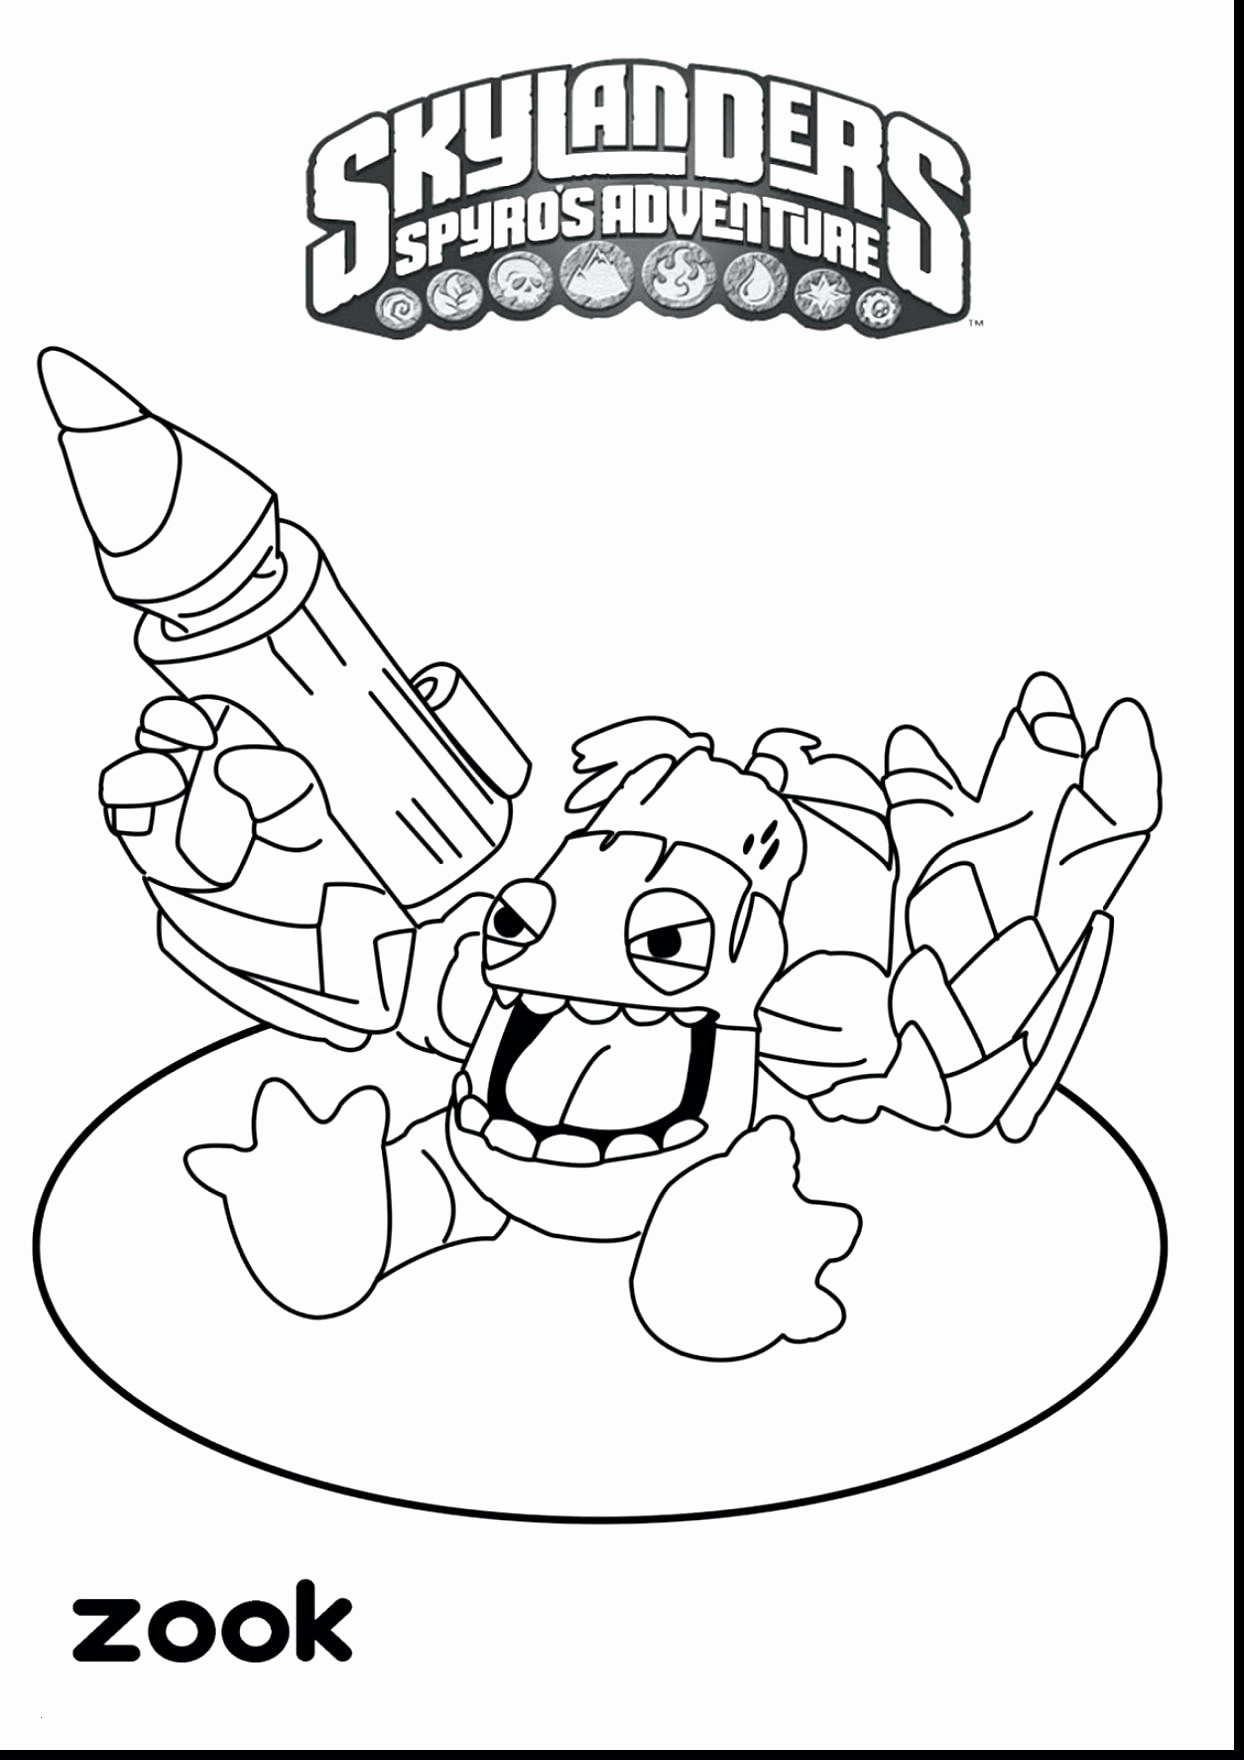 Weather Coloring Pages  Download 3l - Save it to your computer